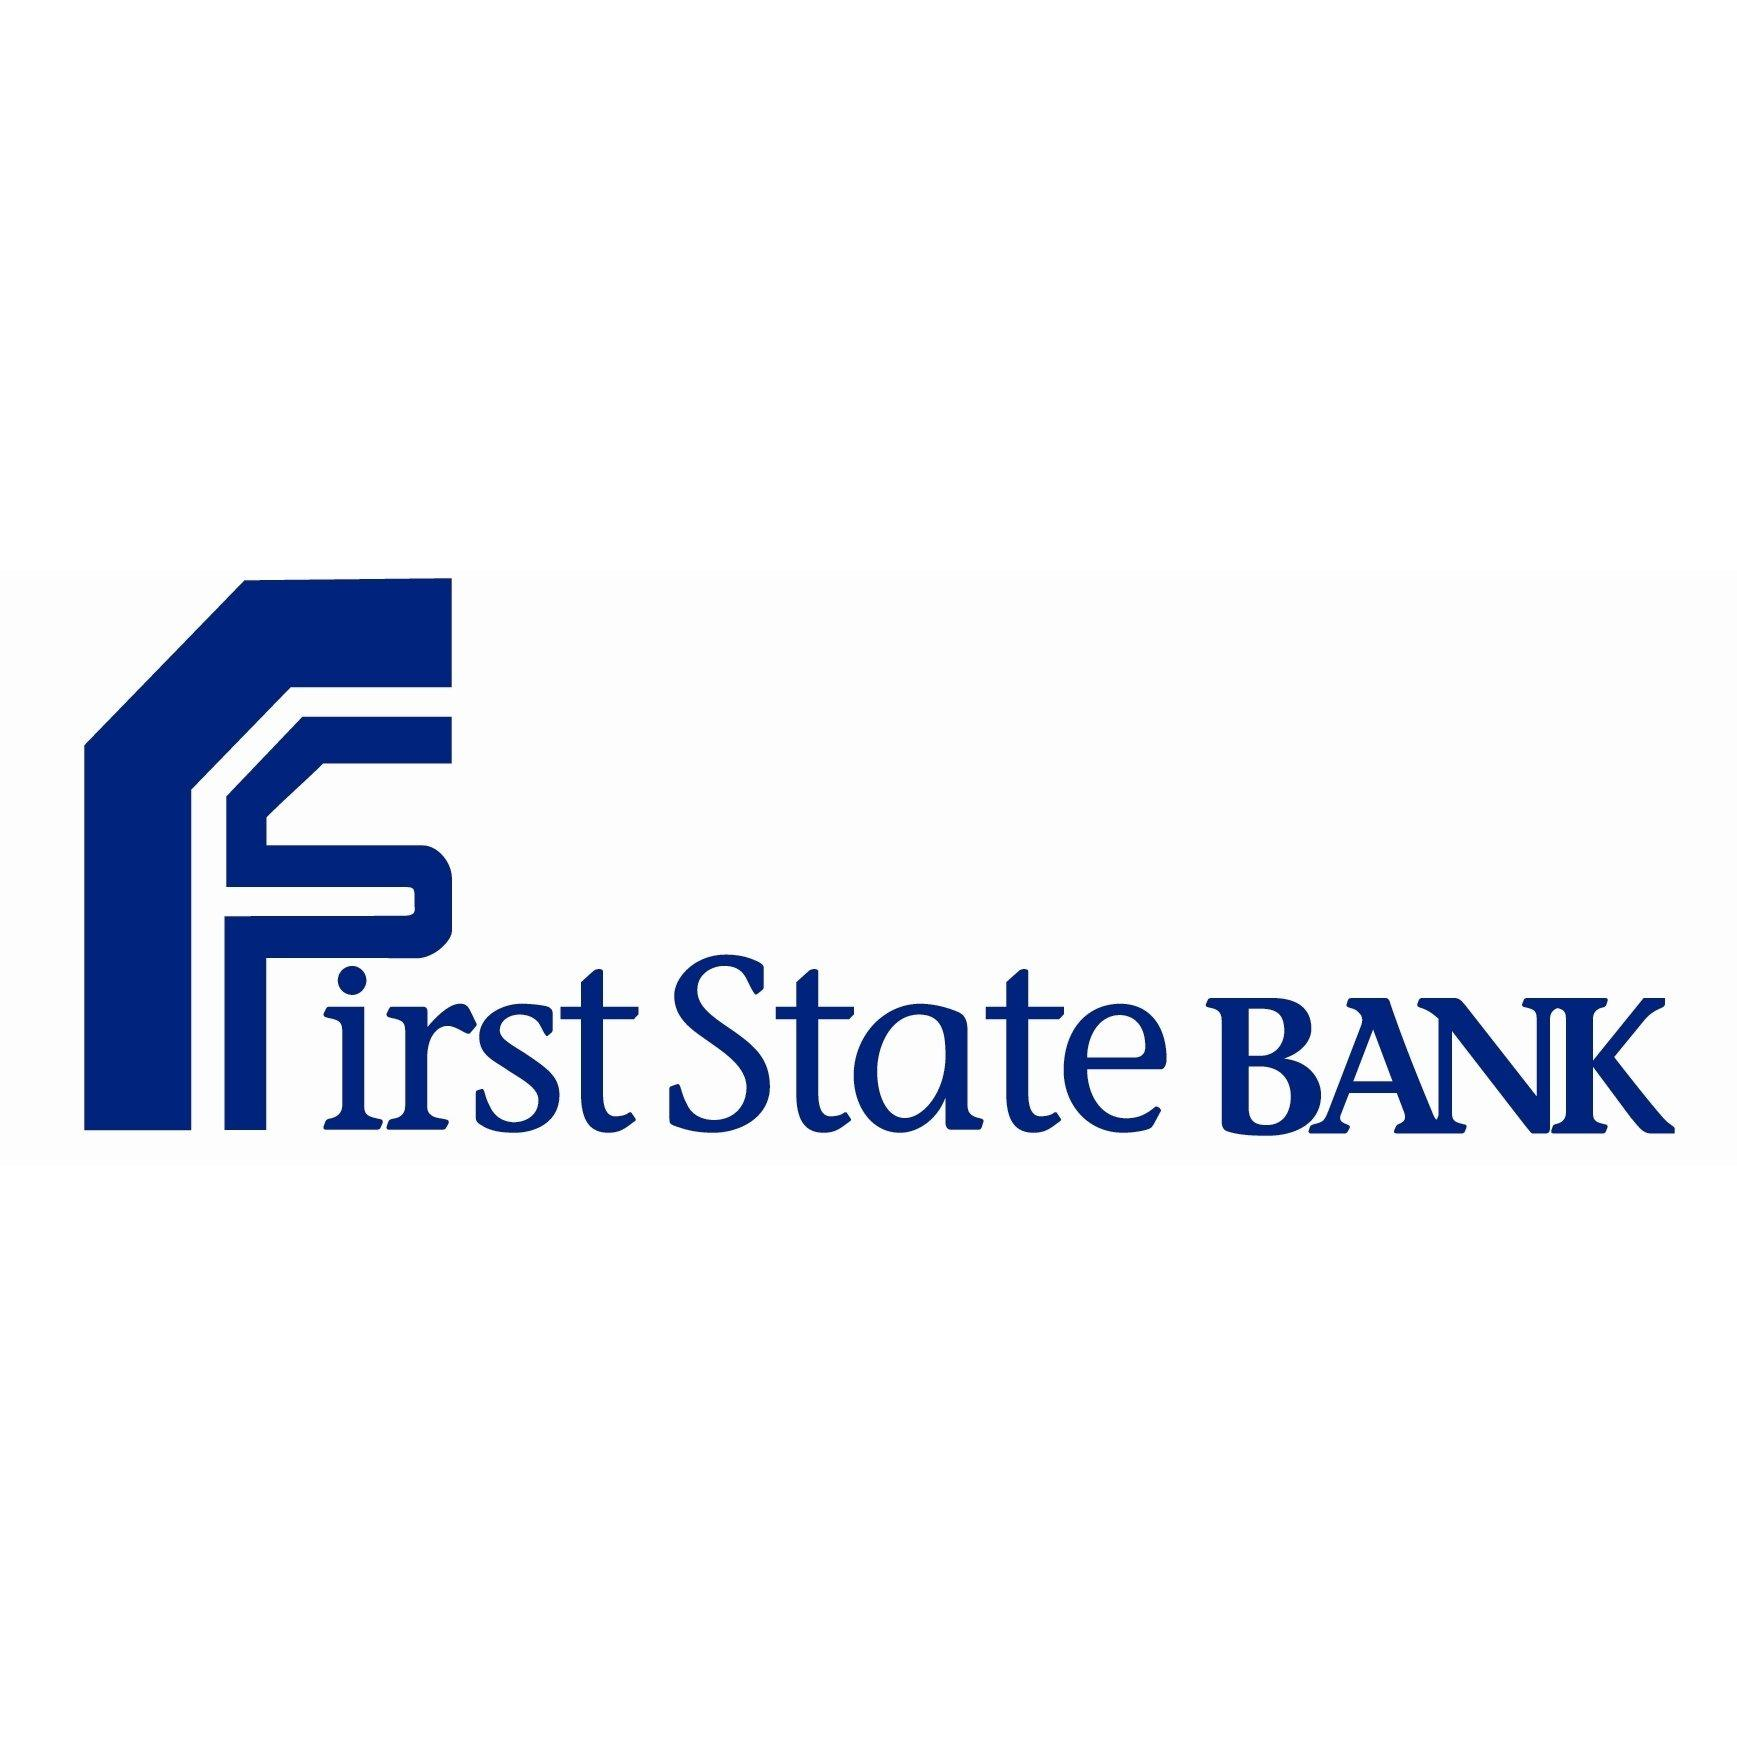 First State Bank - Peebles, OH - Banking